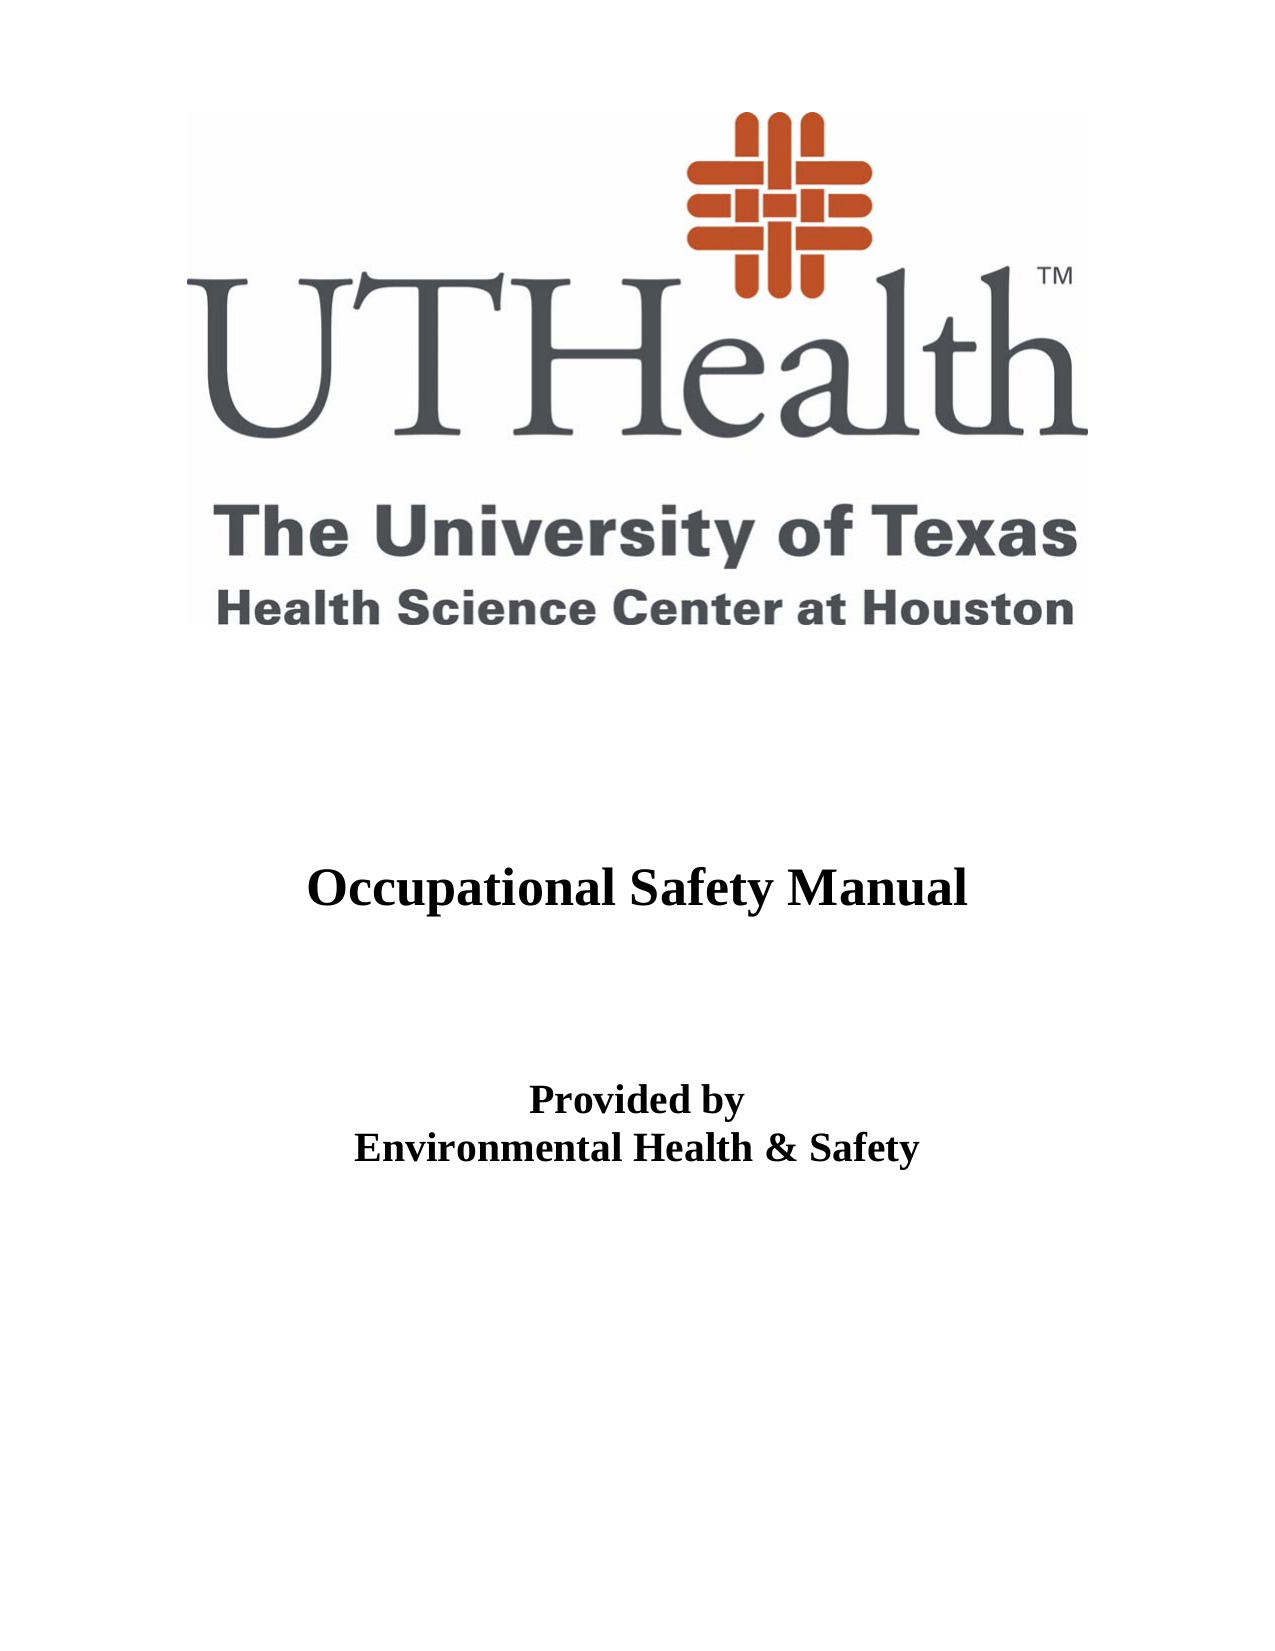 Occupational Safety Manual